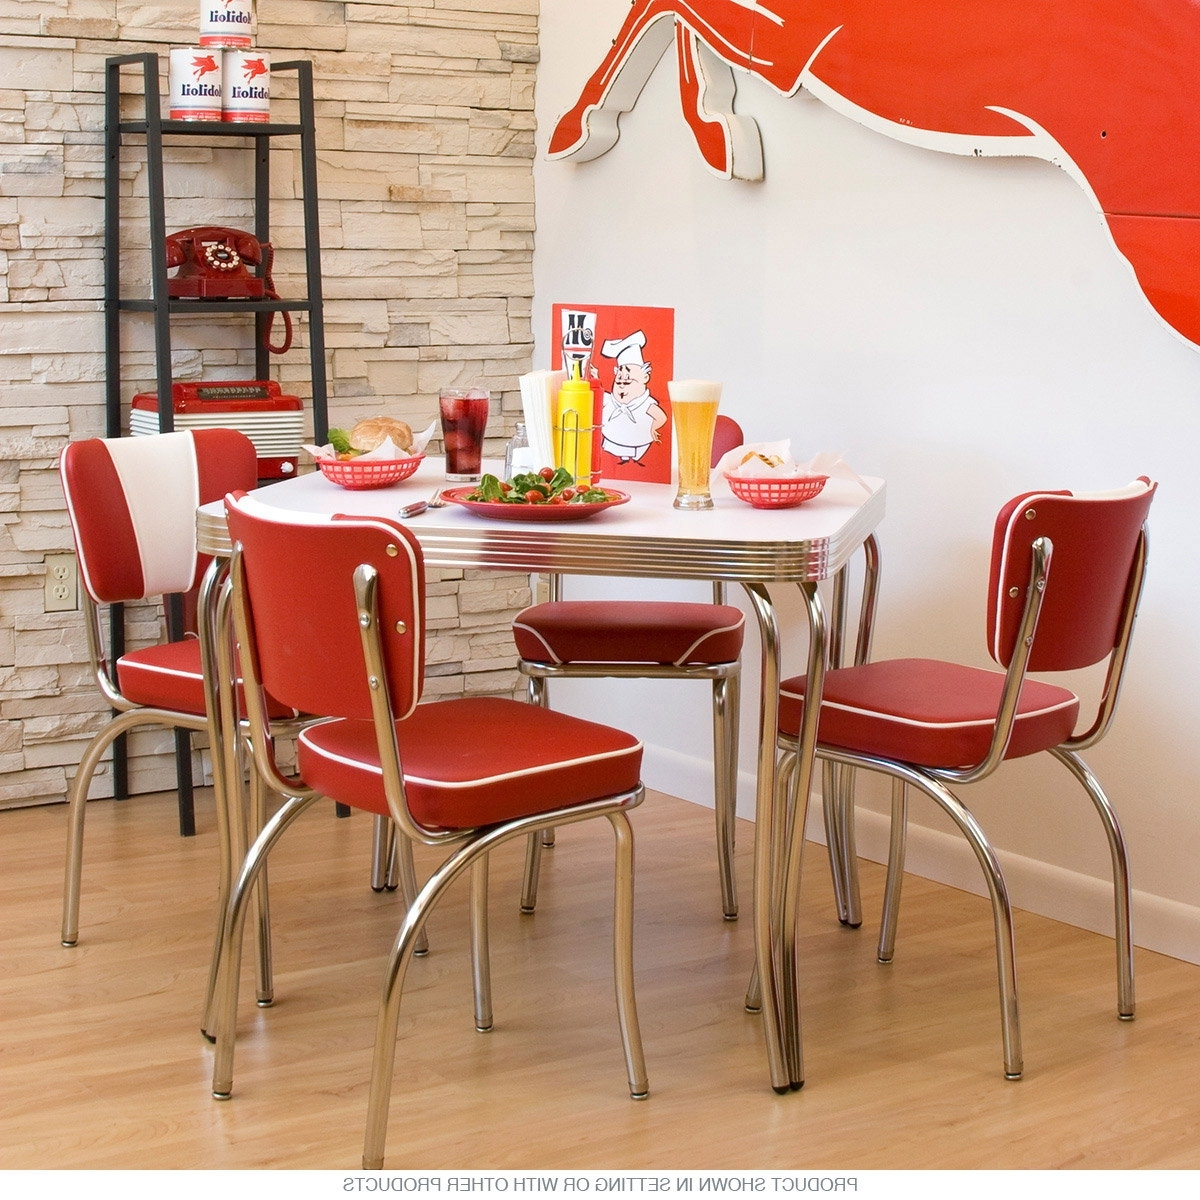 Chrome Dining Room Sets Pertaining To Famous Very Fashionable Retro Dining Table — Ugarelay Ugarelay (Gallery 22 of 25)